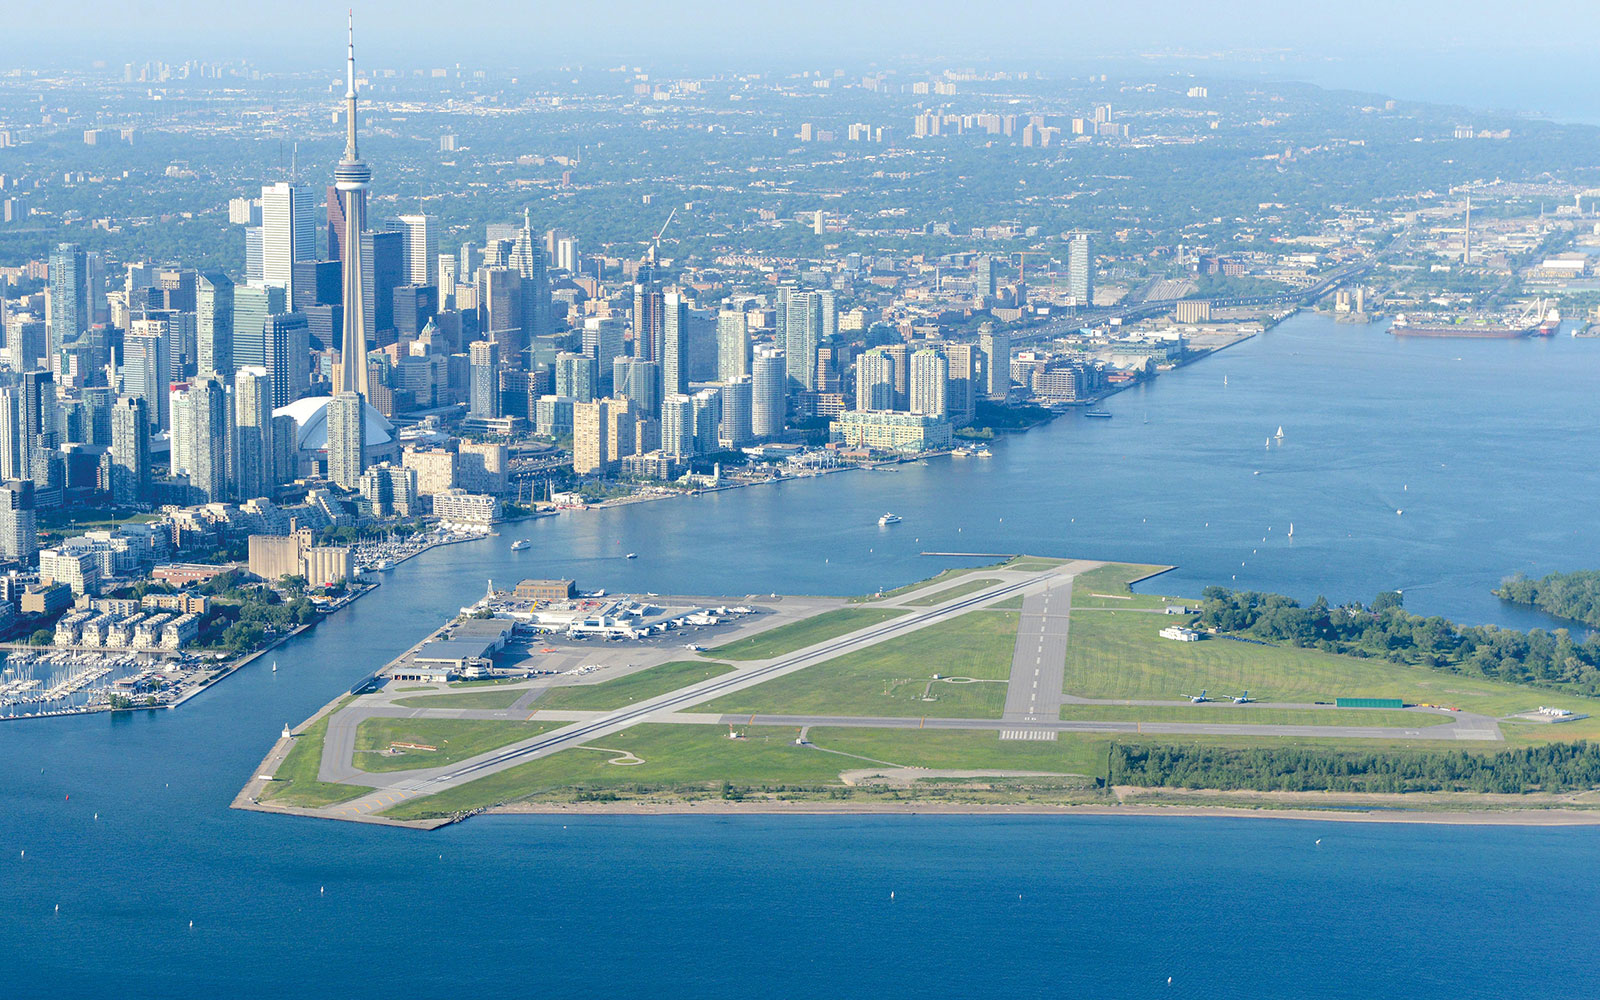 7. Billy Bishop Toronto City Airport